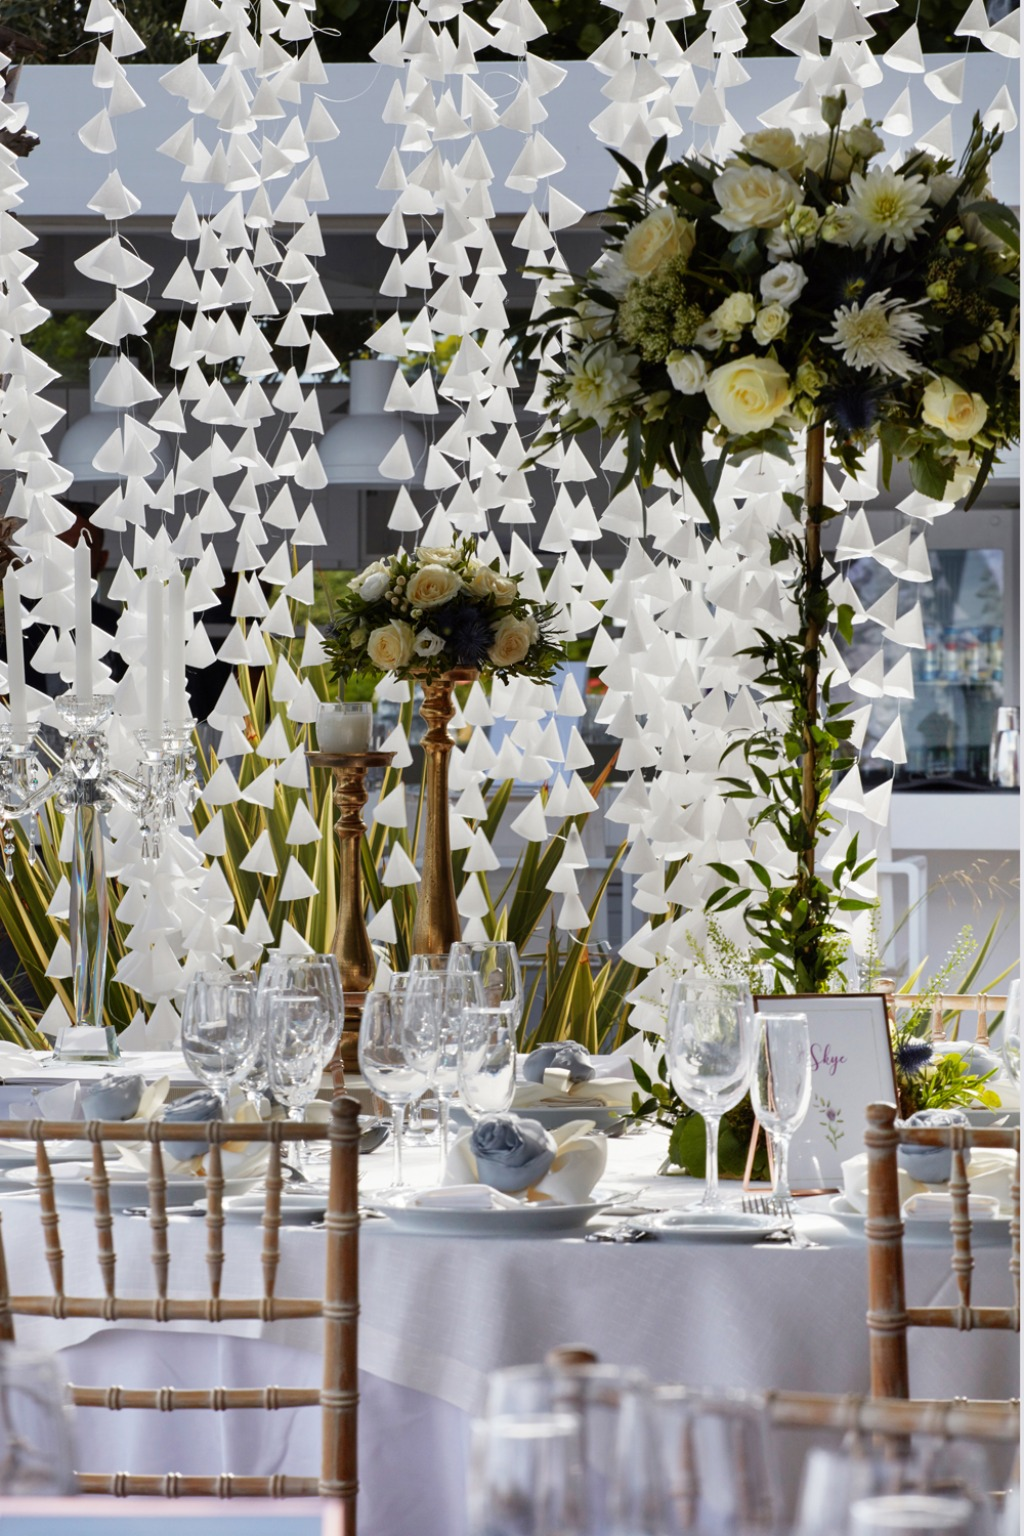 Dreaming of a wedding in Greece? Contact us now and get one step closer to your fabulous Greek wedding! Email us at info@styleconcept